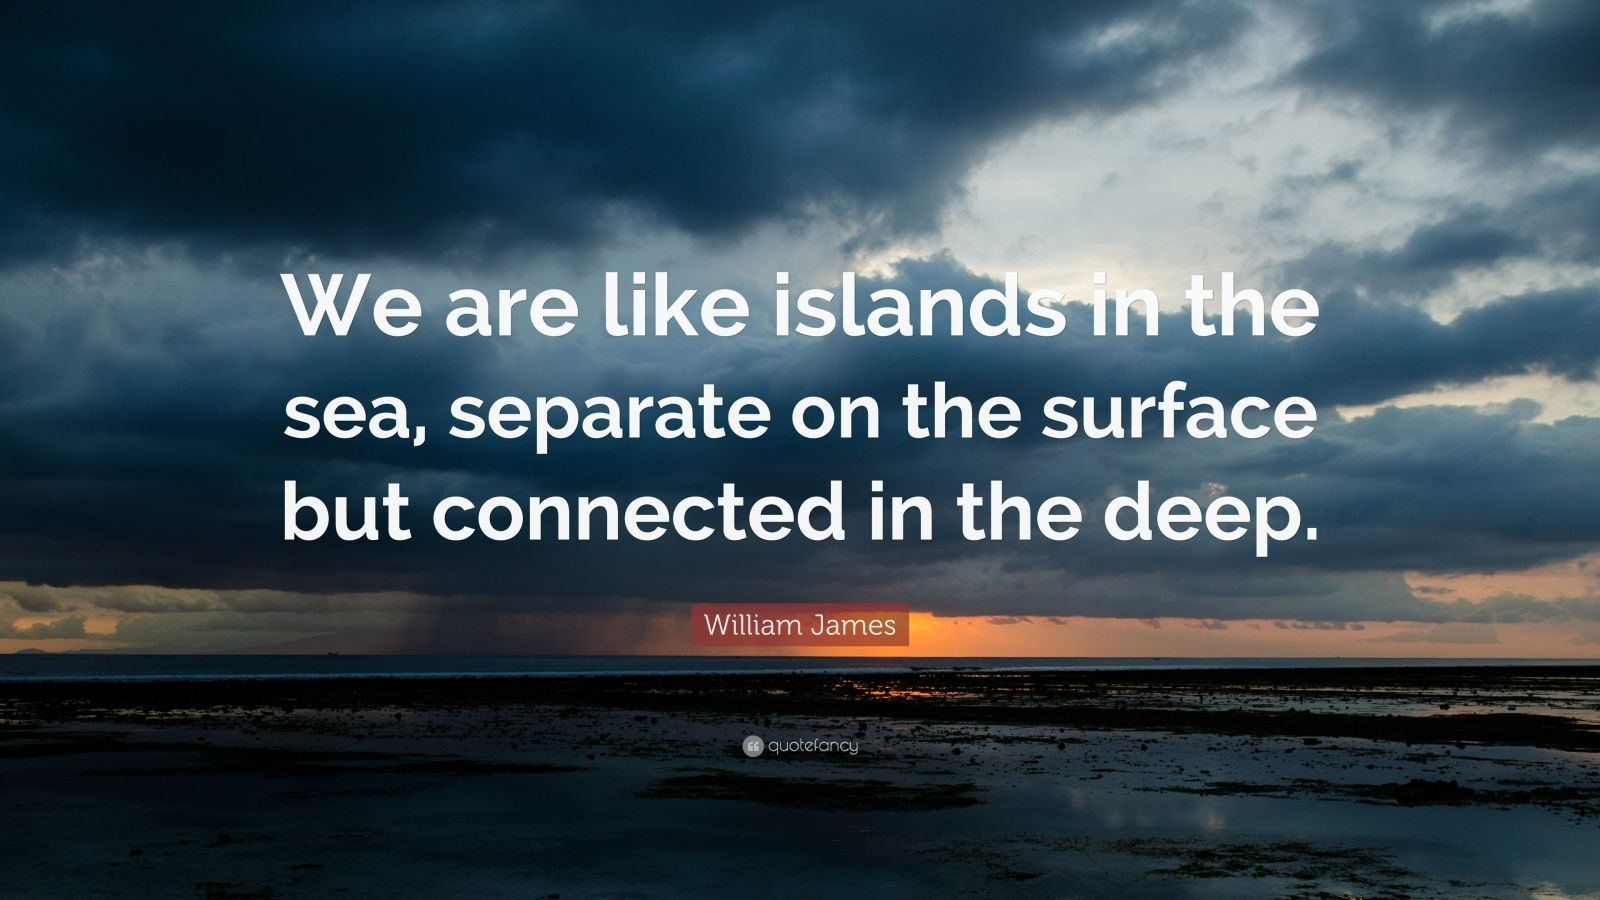 Free Friendship Quotes Wallpapers William James Quote We Are Like Islands In The Sea